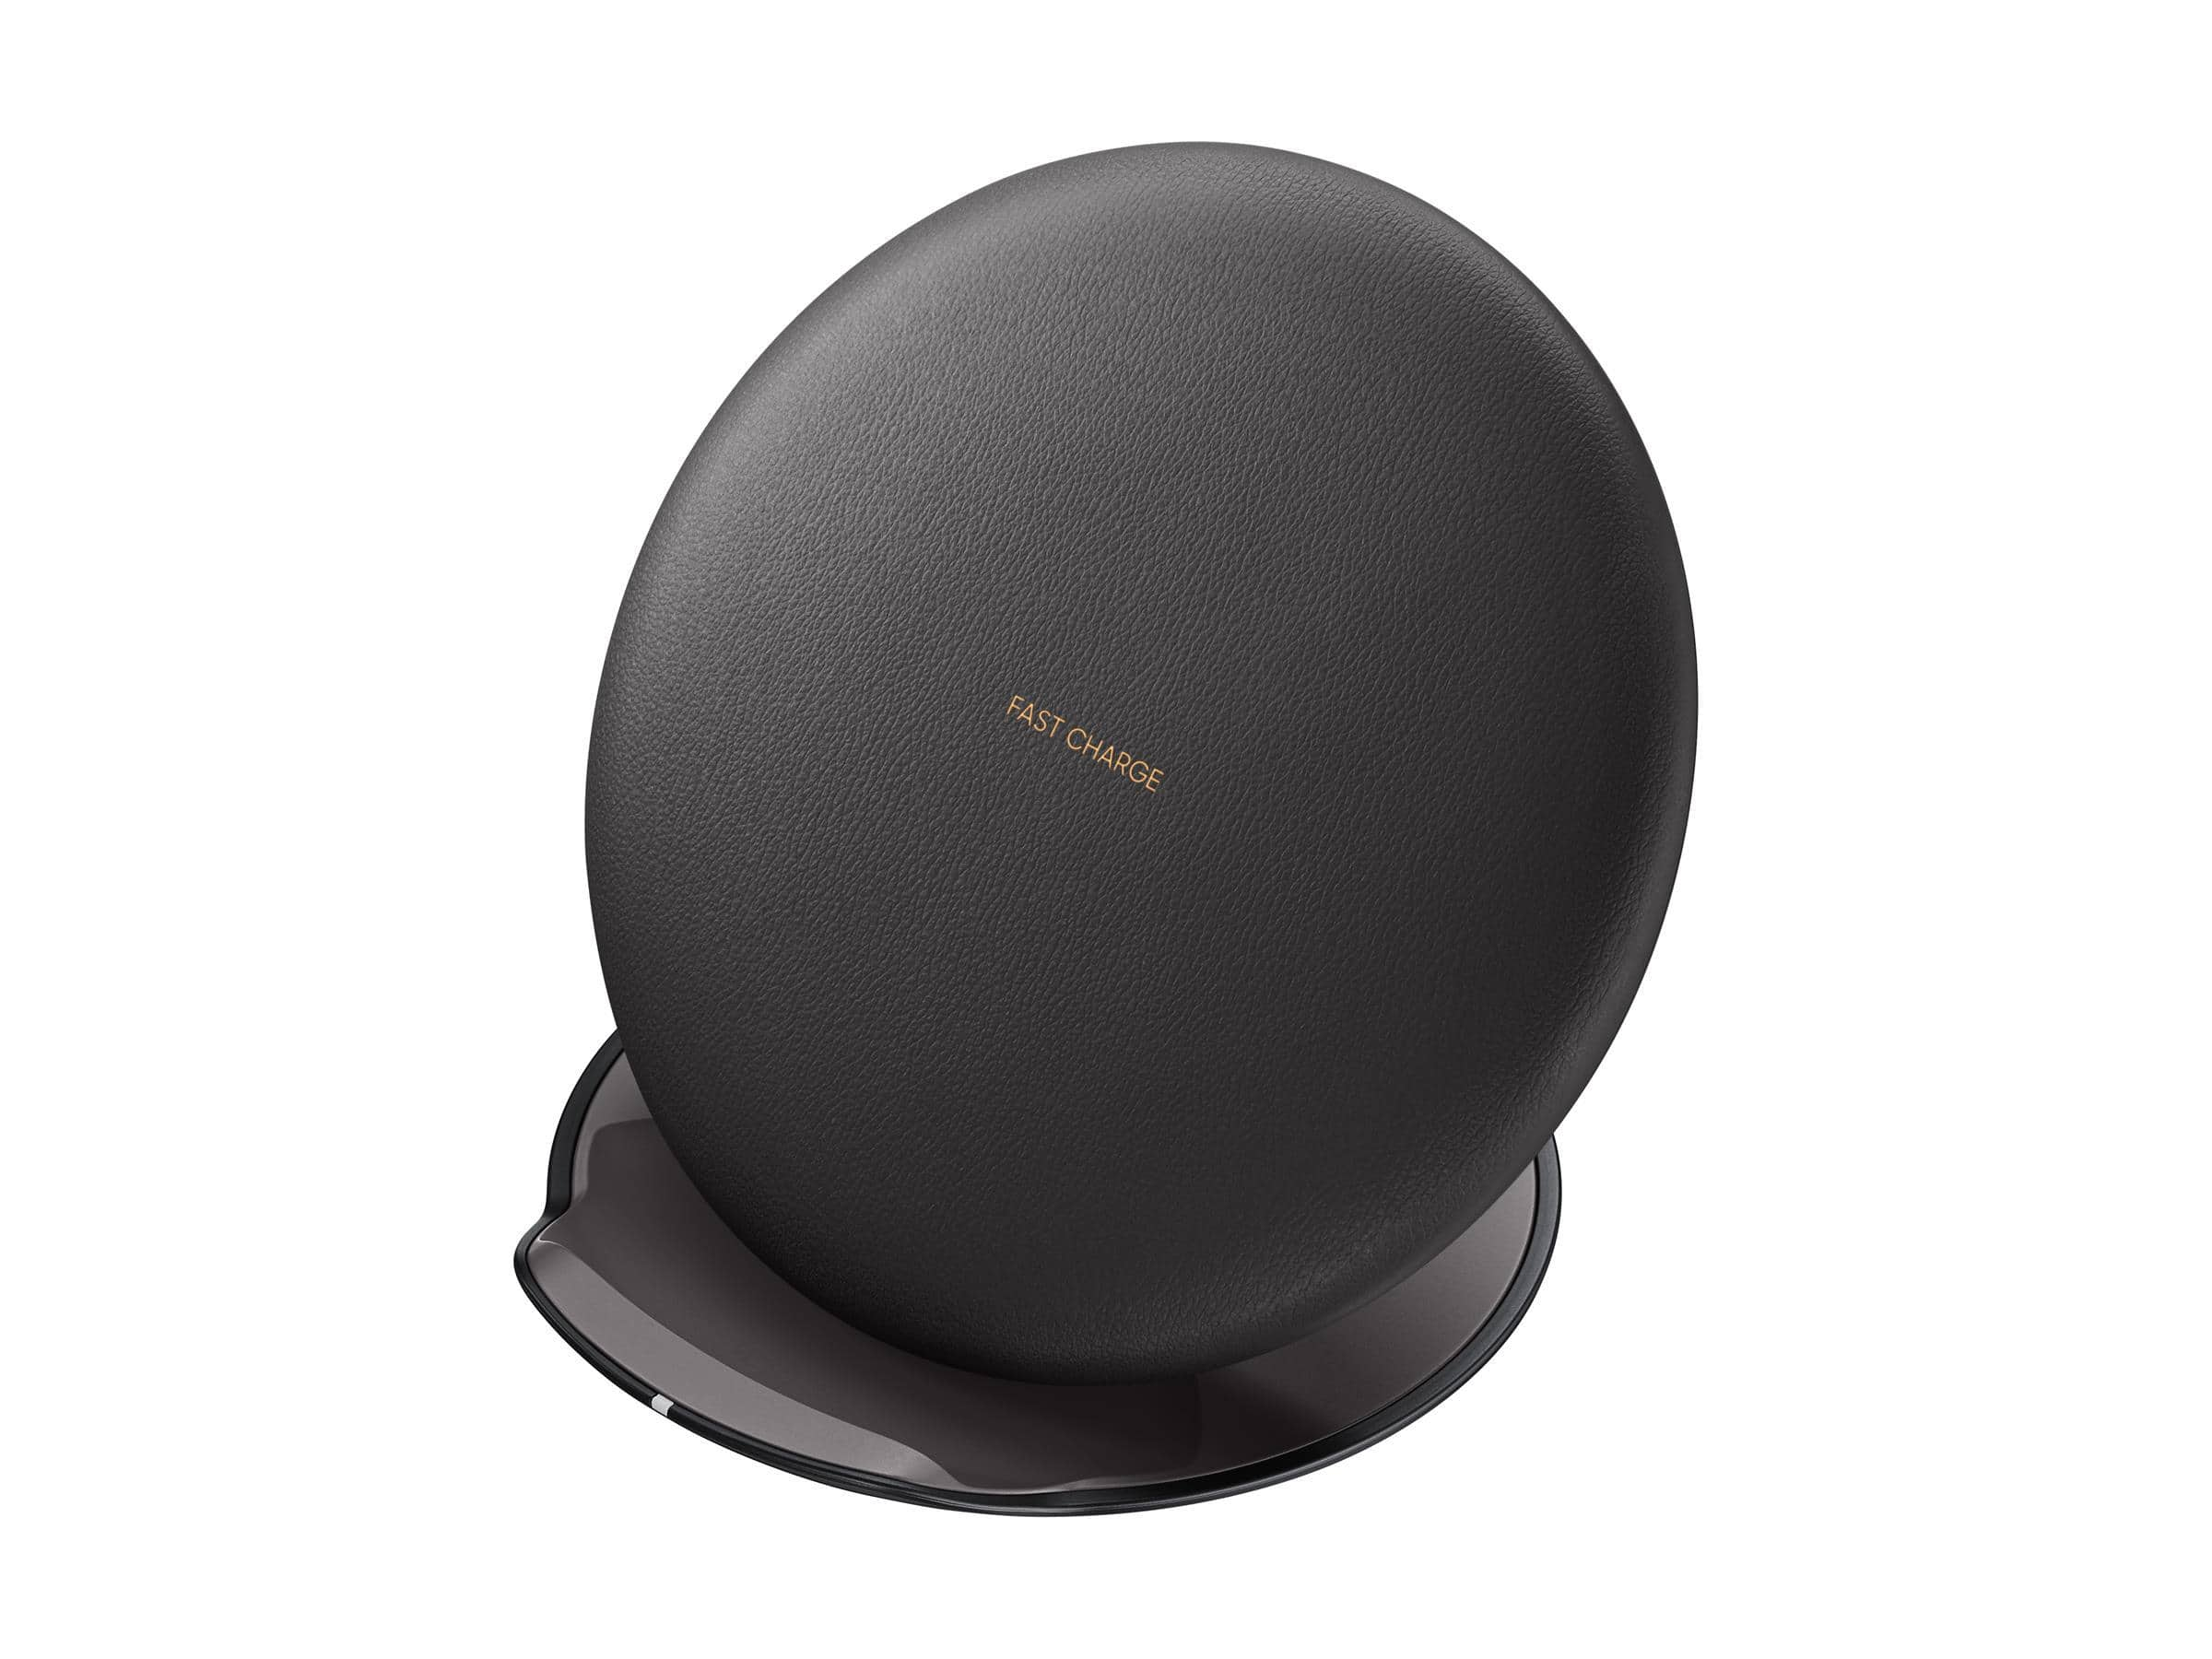 شارژر بیسیم سامسونگ Samsung Fast Charge Wireless Convertible Charger |